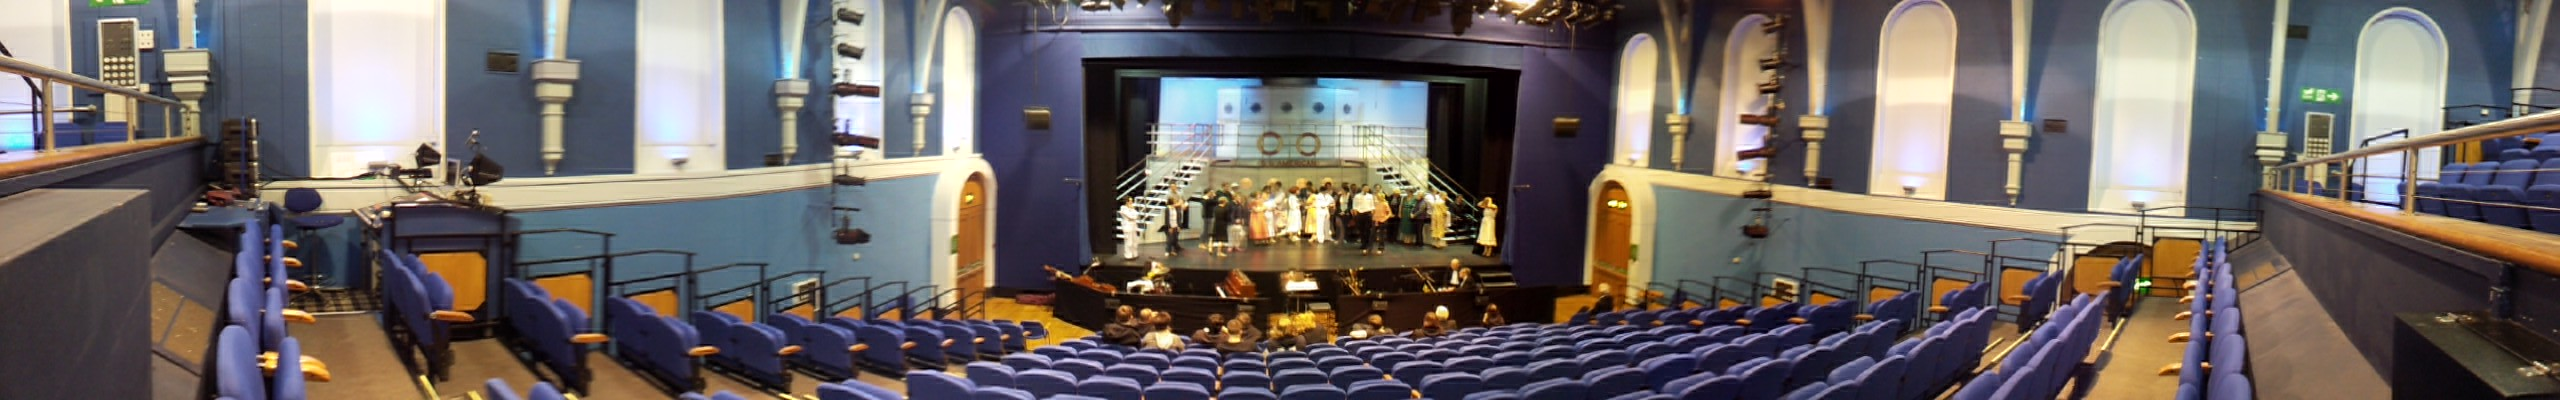 Panoramic view of the stage from the rear centre of the auditorium stalls with the sound mix position in view rear of stalls left in working light with the cast on stage in costume getting notes